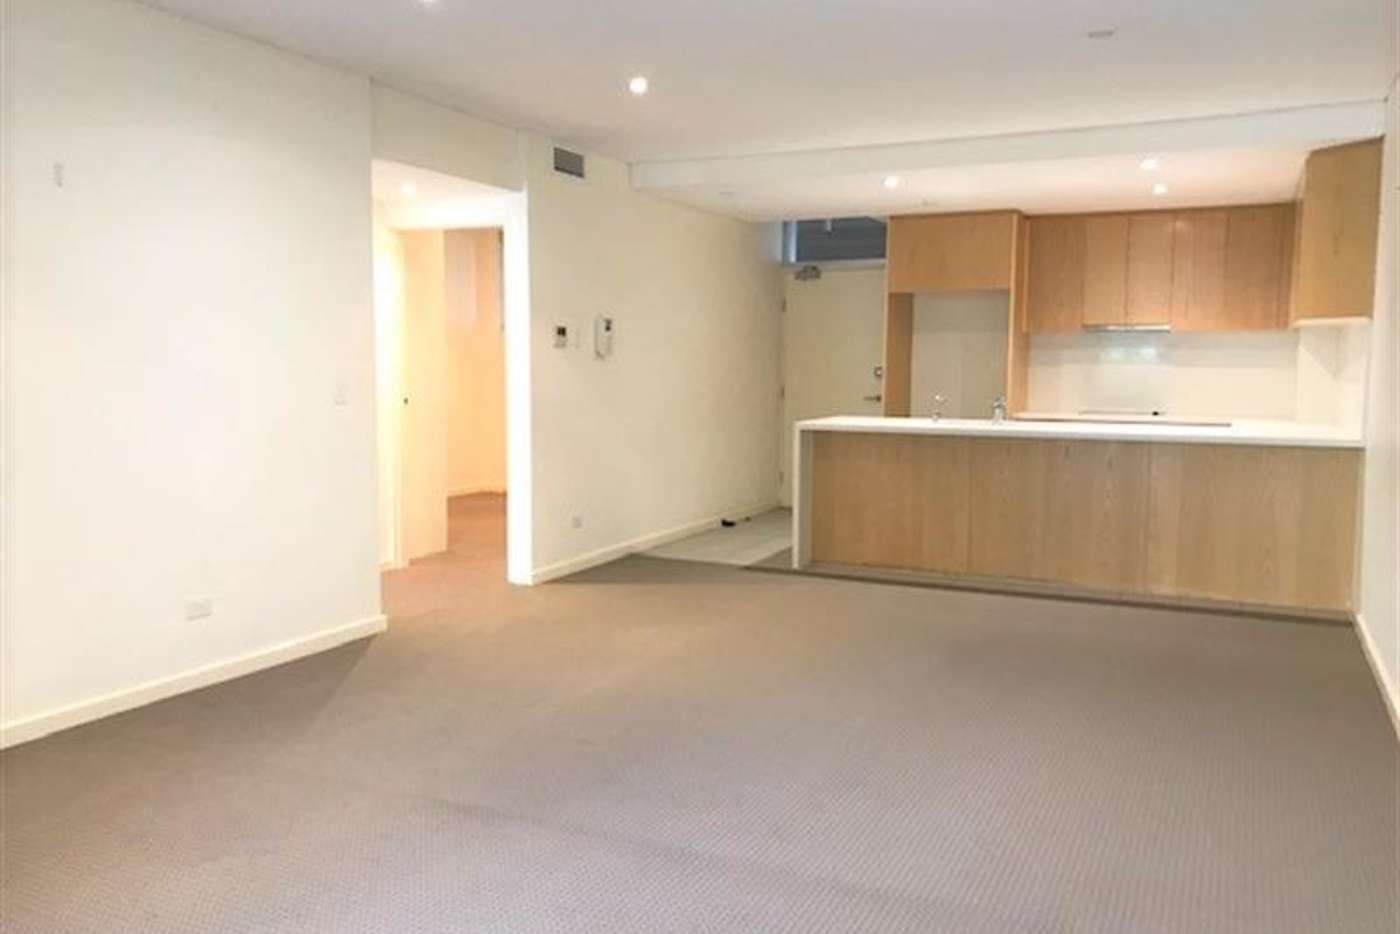 Main view of Homely apartment listing, 16/68-74 Wentworth  Street, Randwick NSW 2031